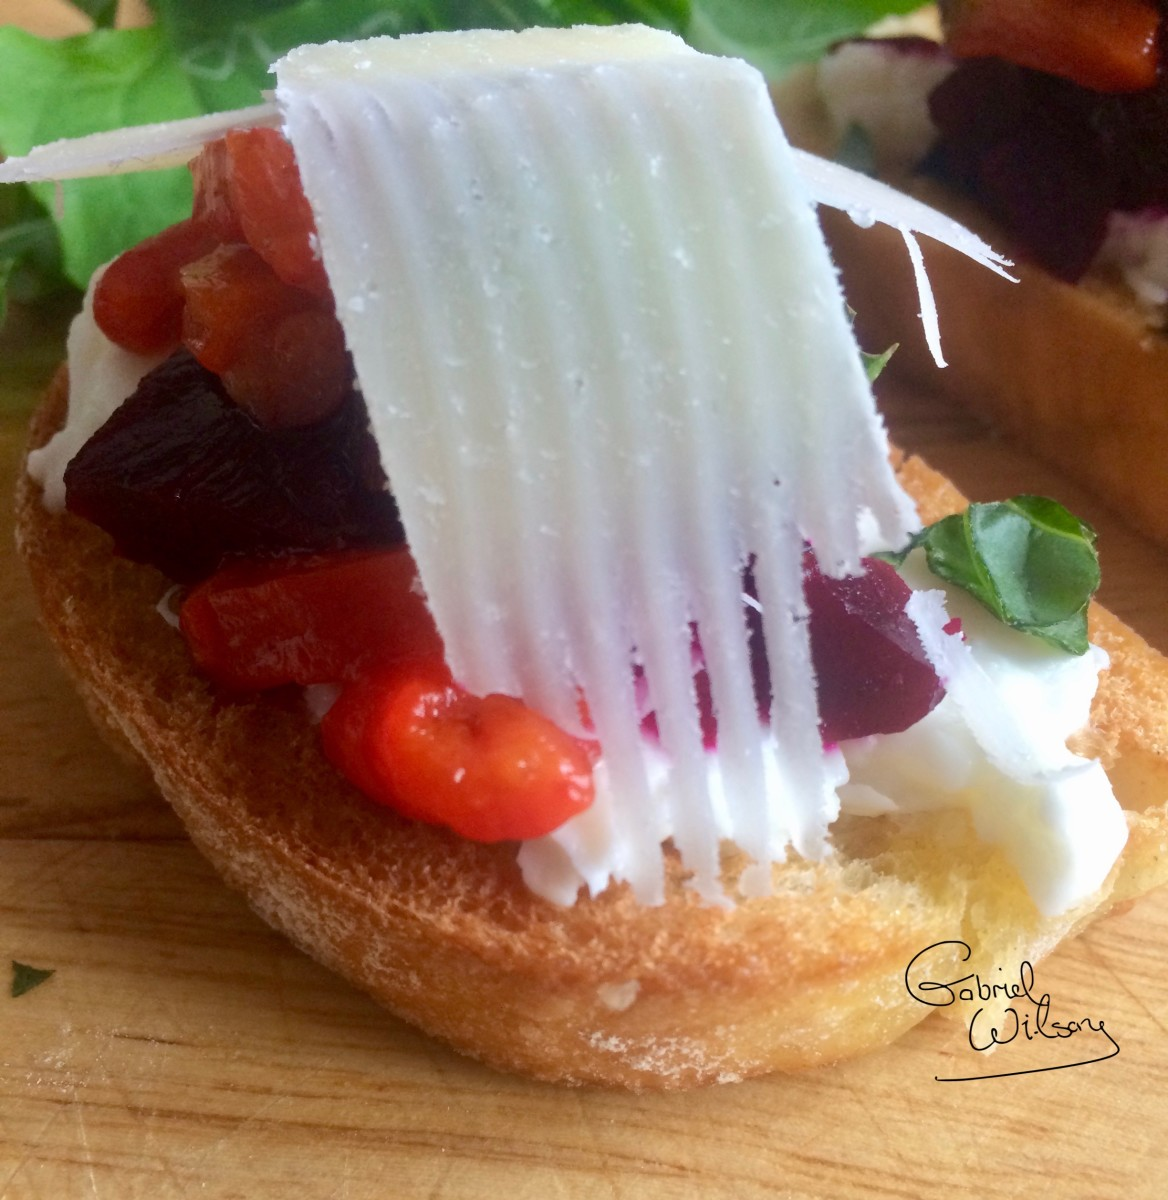 Bruschetta Recipe: Delicious Antipasto With Goat Cheese, Beetroot, and Roasted Red Pepper